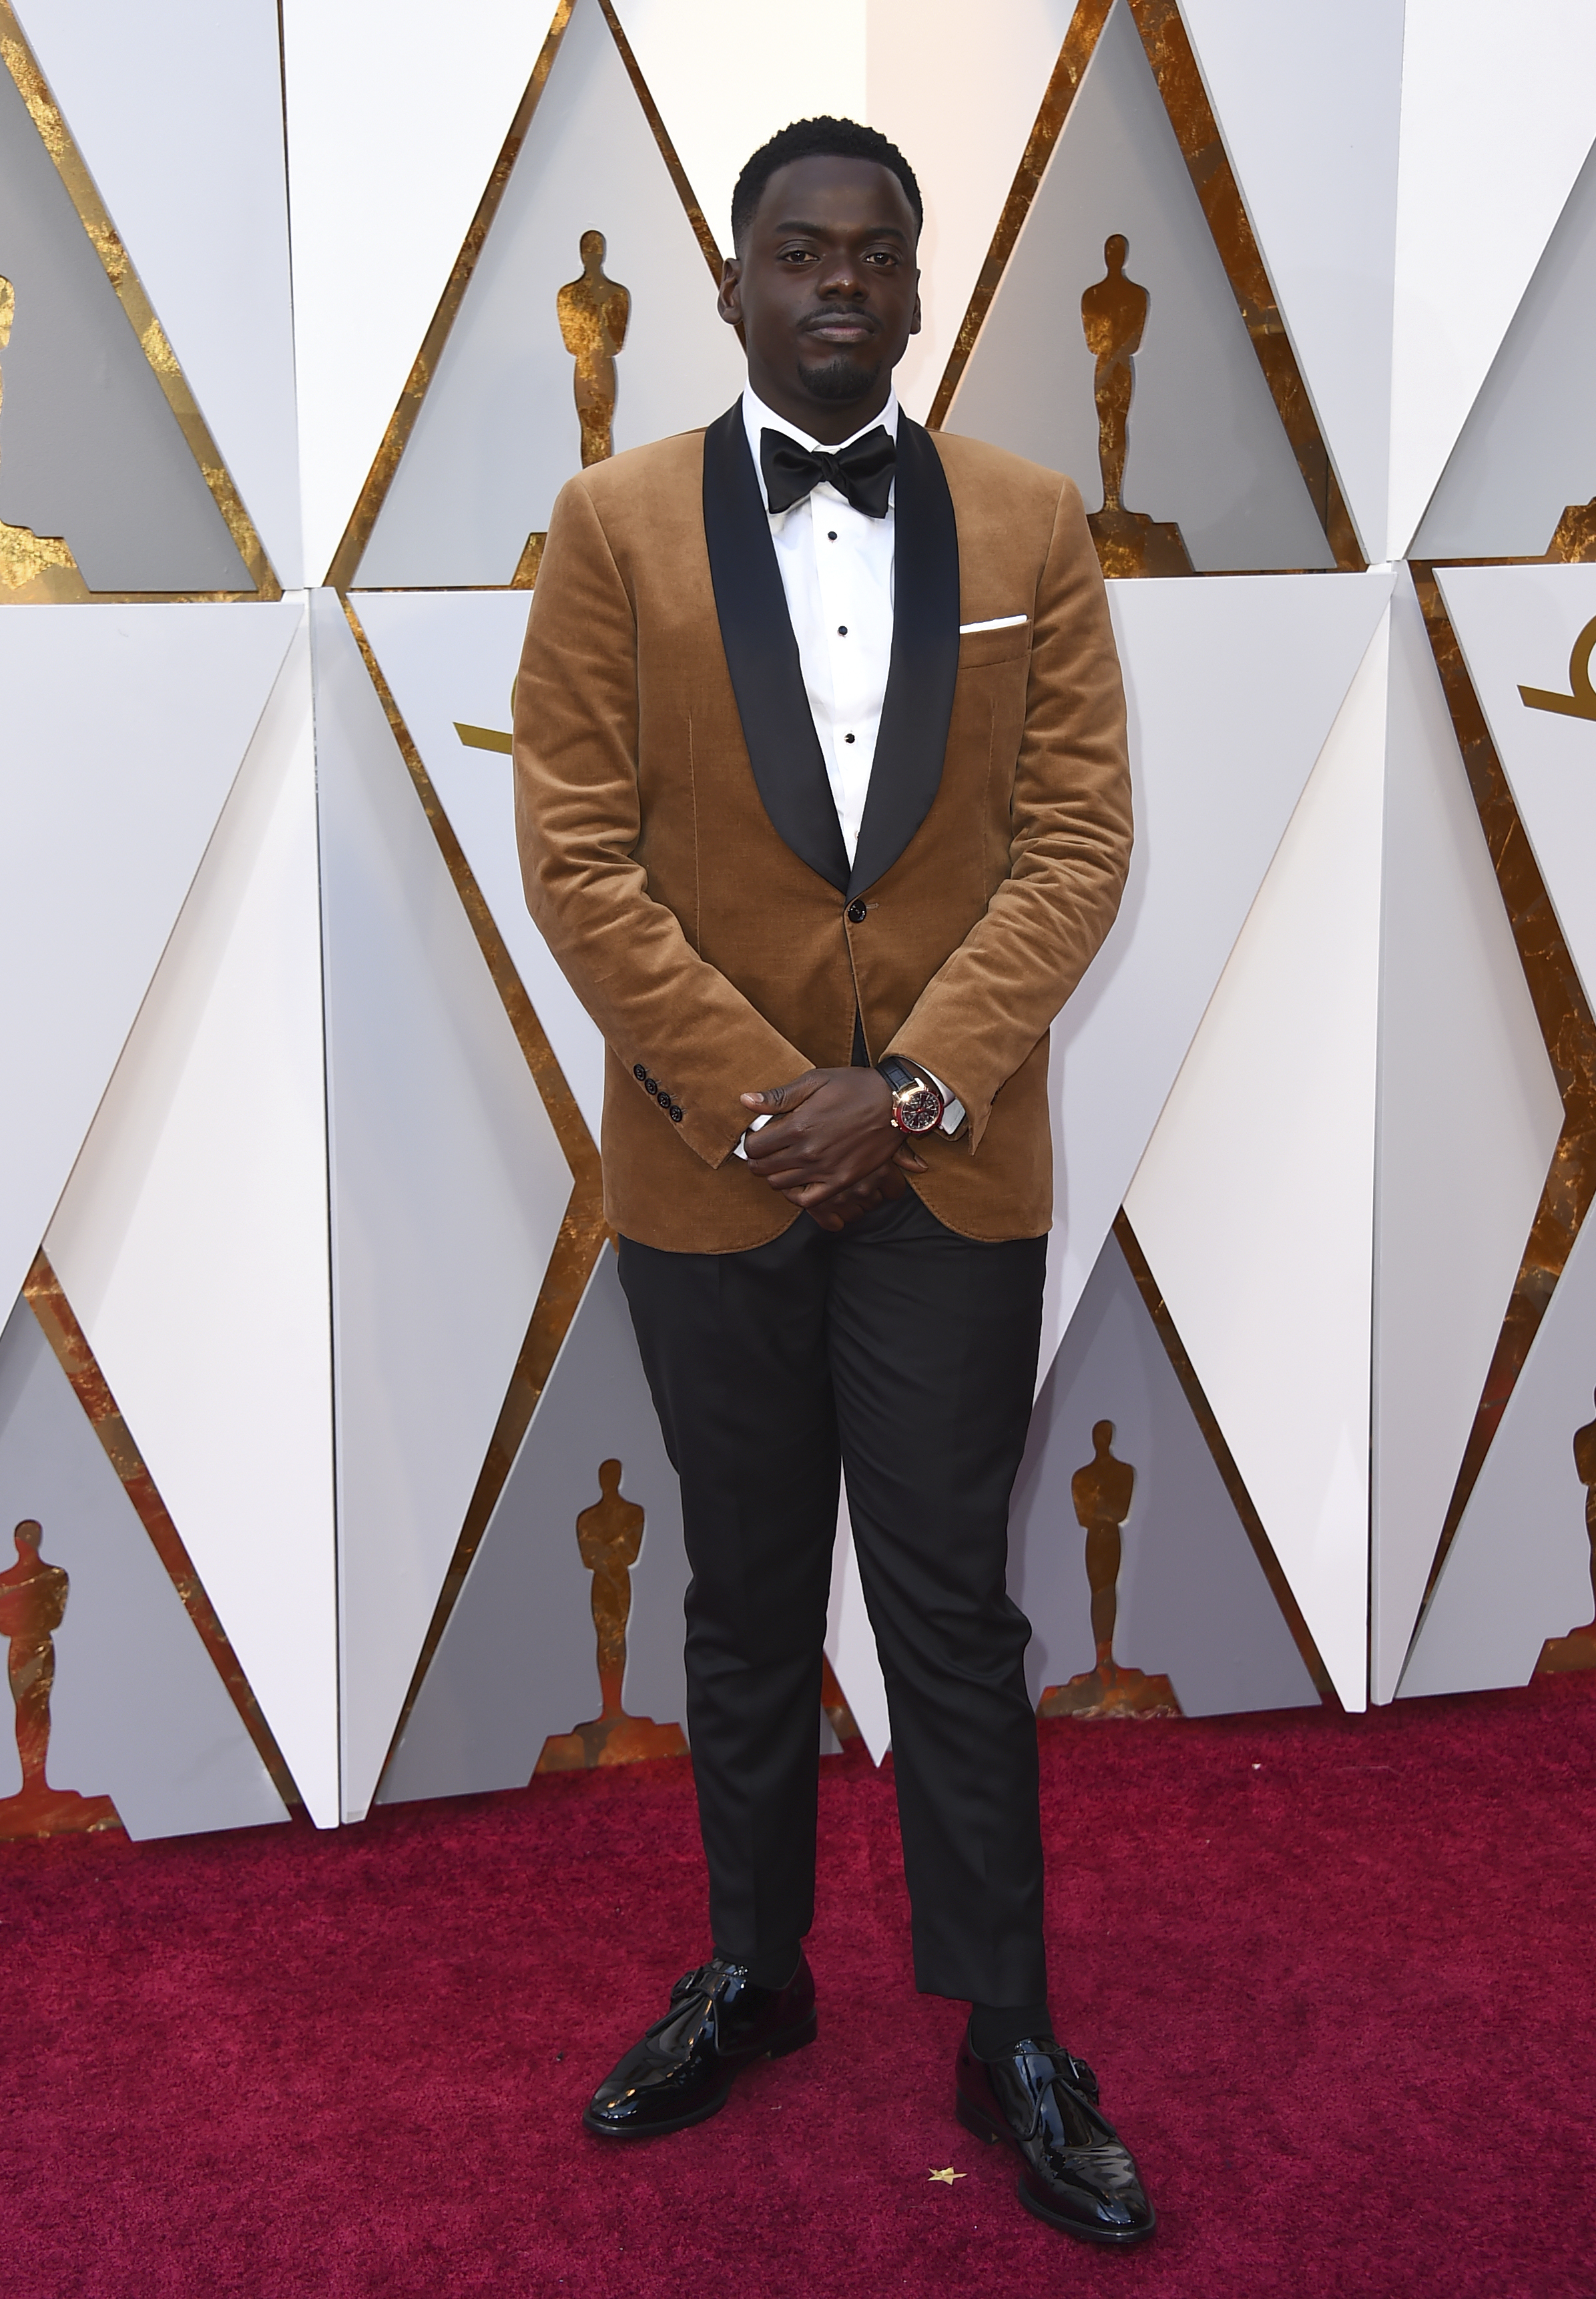 <div class='meta'><div class='origin-logo' data-origin='none'></div><span class='caption-text' data-credit='Jordan Strauss/Invision/AP'>Daniel Kaluuya, nominated for Best Actor for ''Get Out,'' arrives at the Oscars on Sunday, March 4, 2018, at the Dolby Theatre in Los Angeles.</span></div>